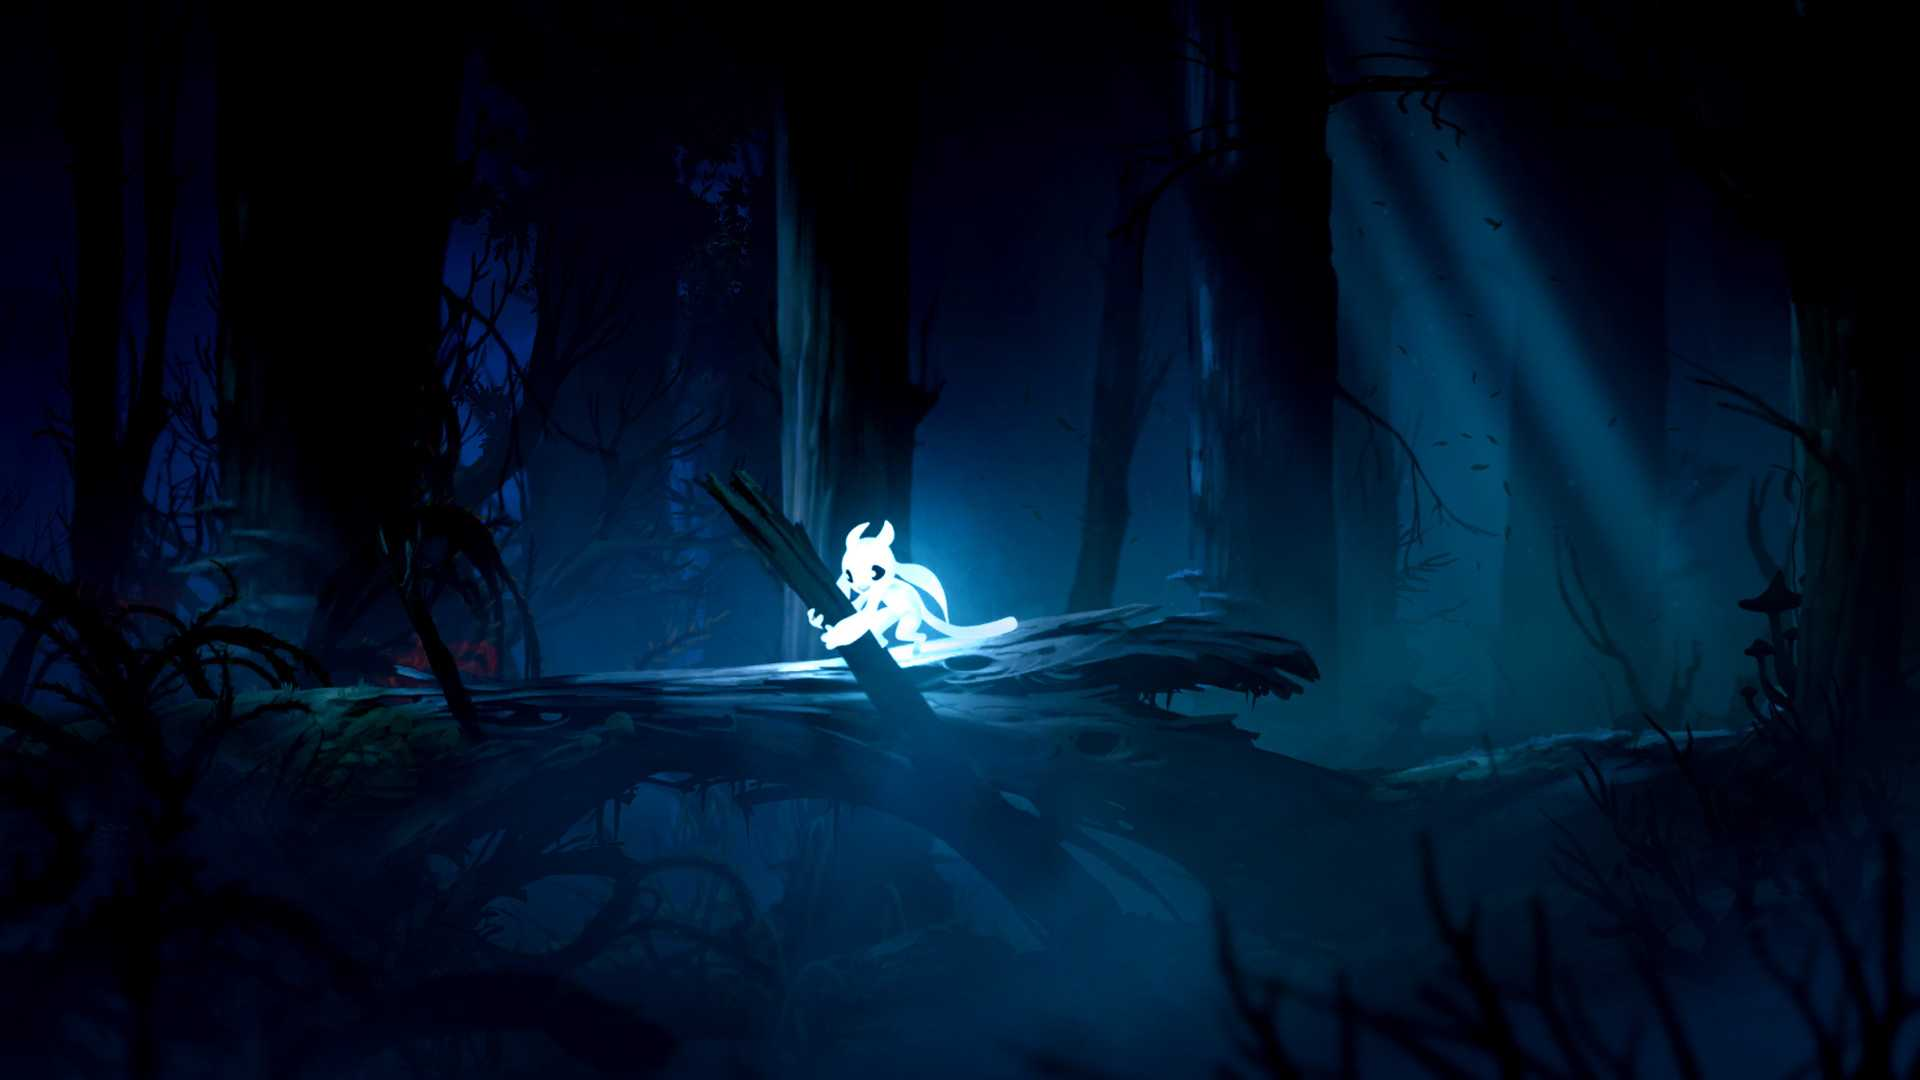 Ori and the Blind Forest дешево